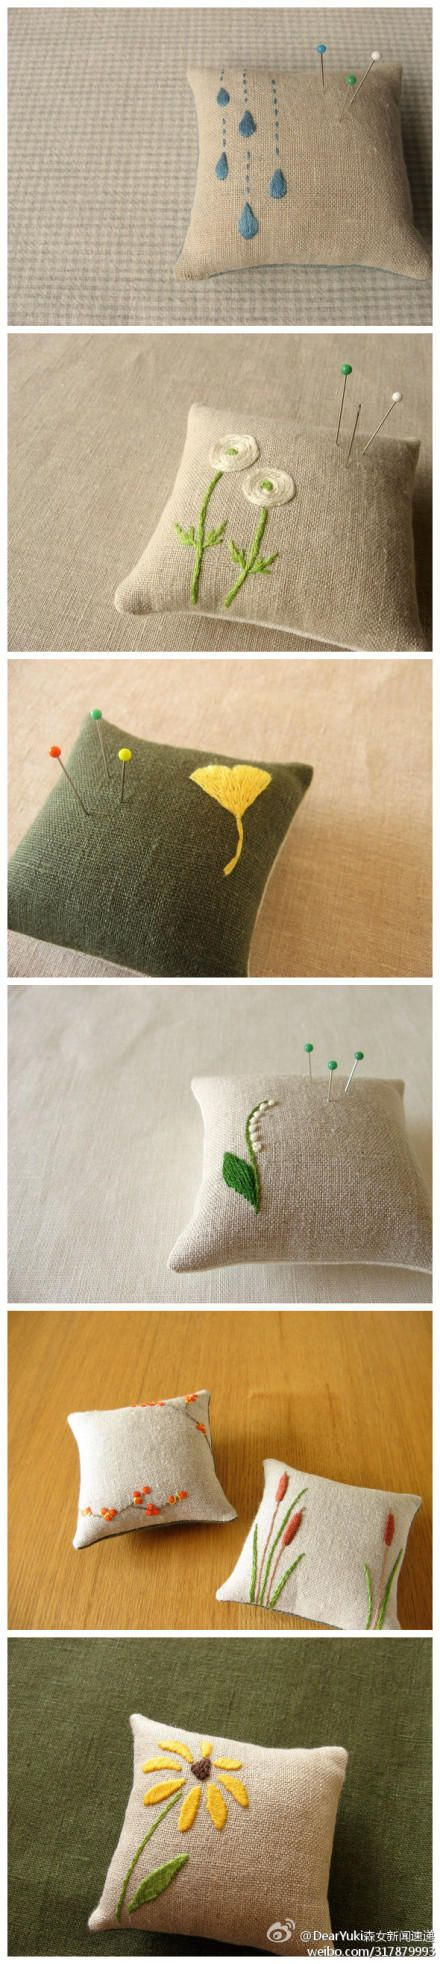 Simply Decorated Pincushions • they are lovely as so often pincushions are very heavily embellished one feels reluctant to use them for their intended purpose.